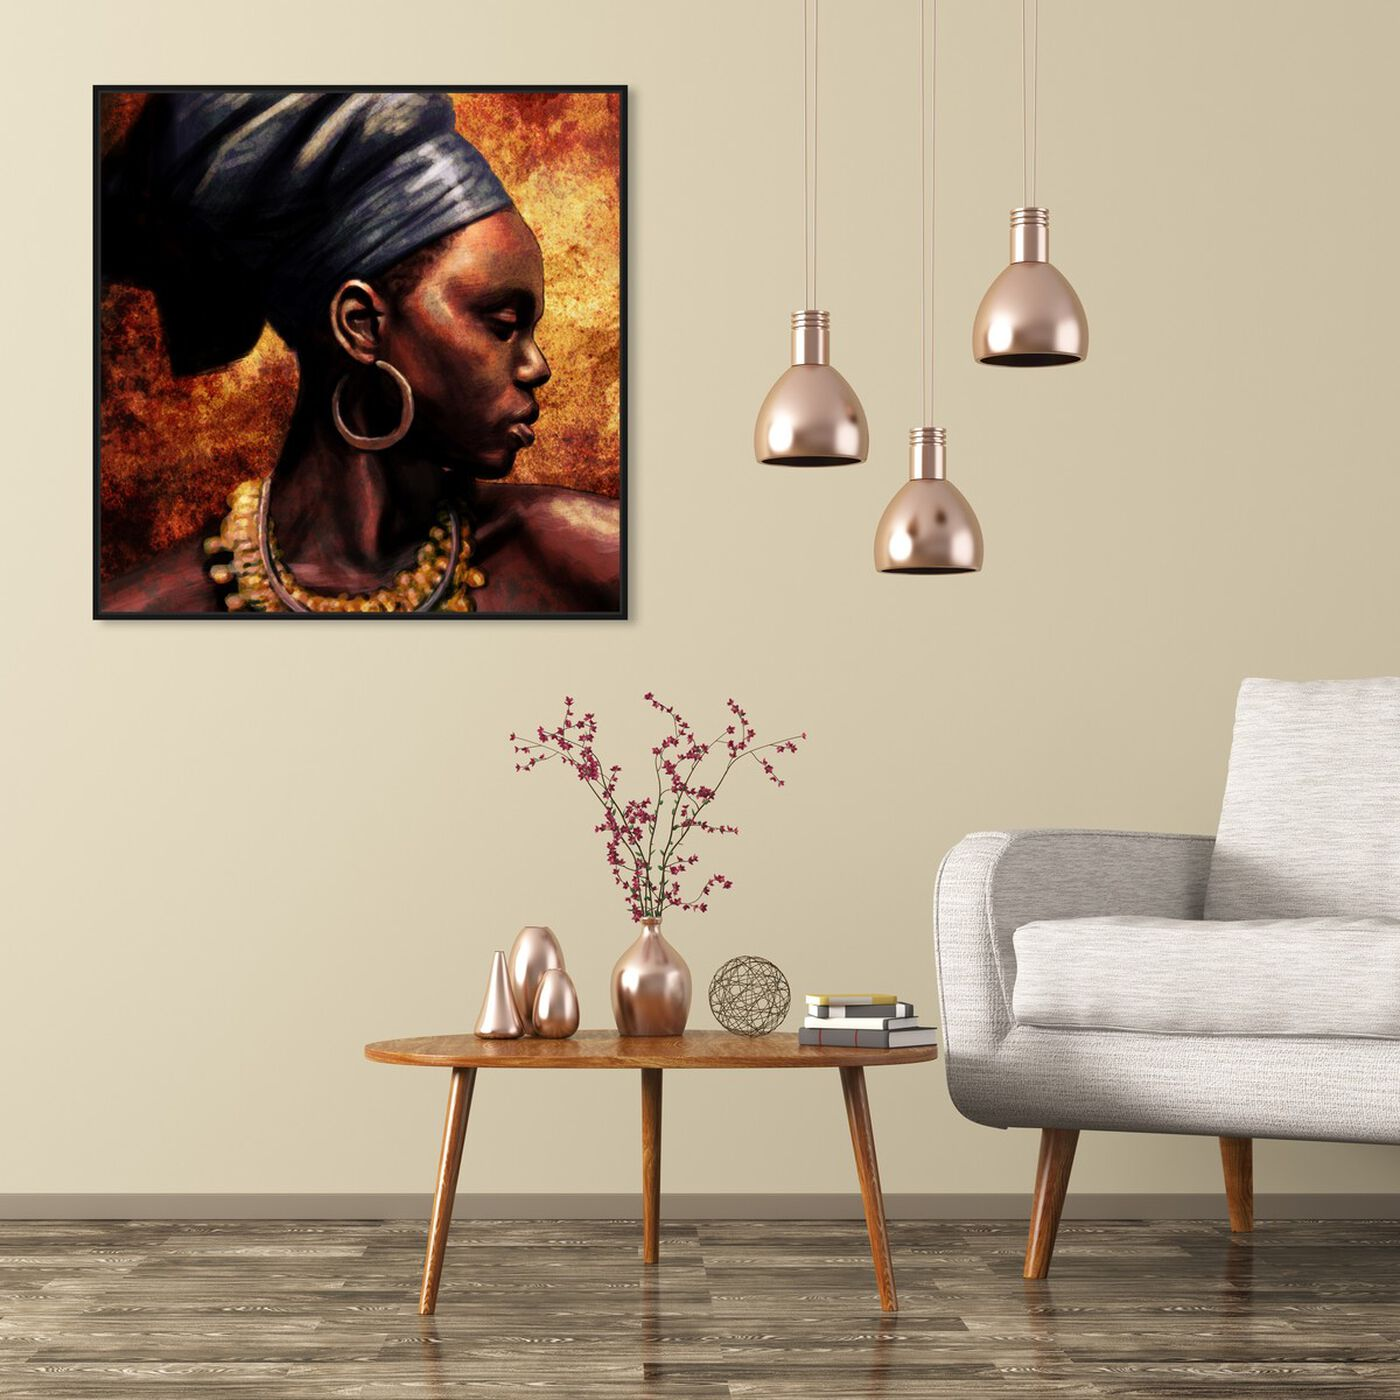 Hanging view of Ashanti featuring people and portraits and portraits art.